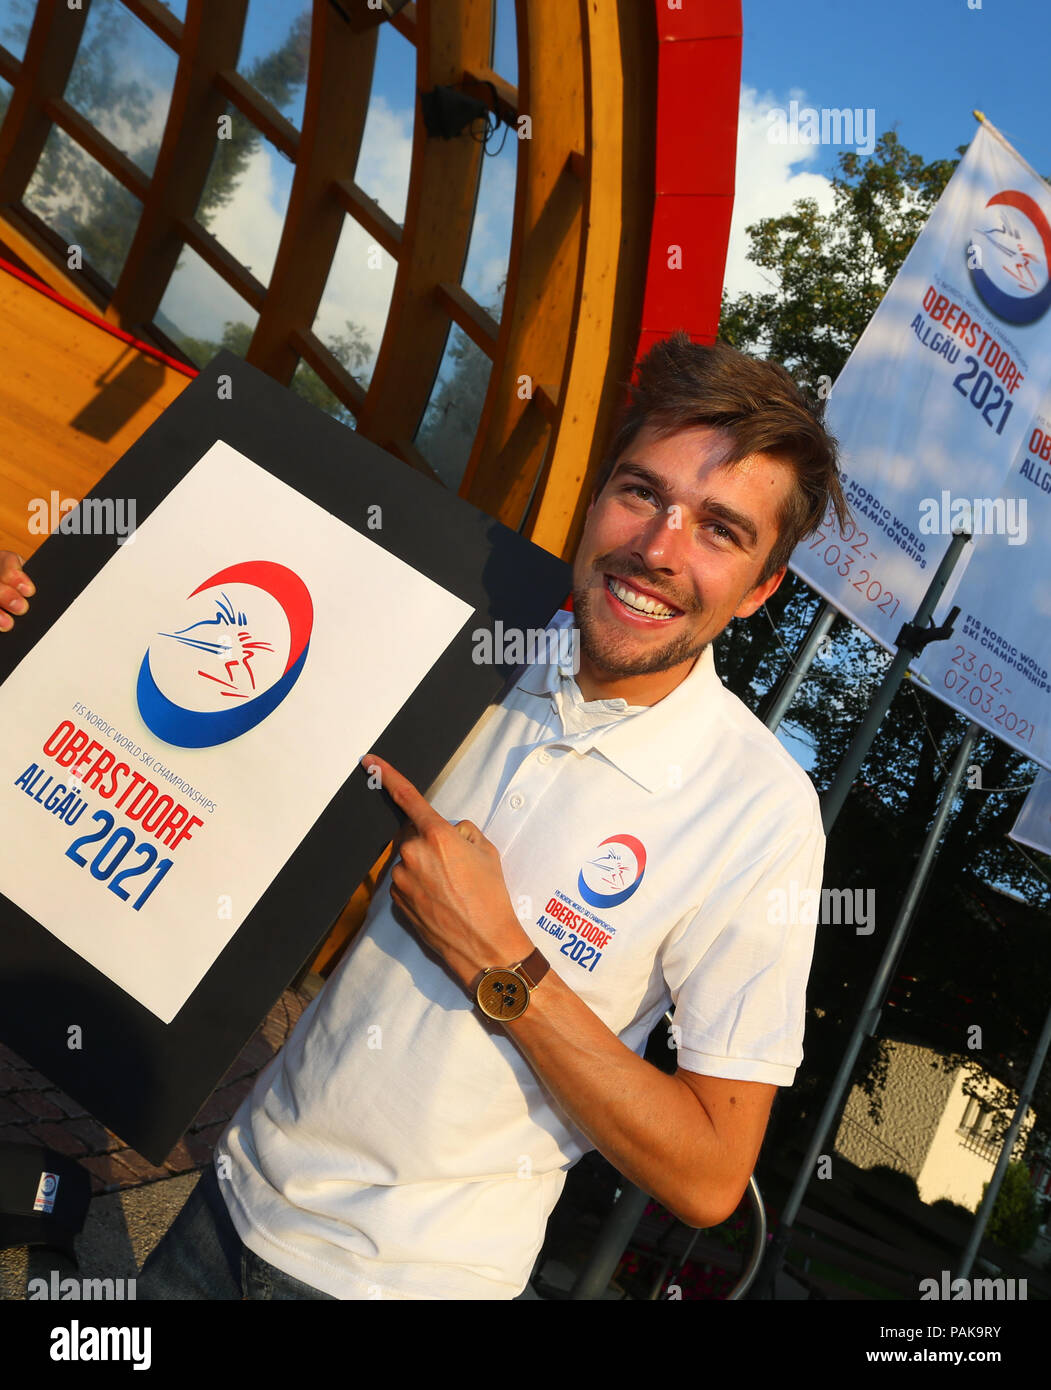 Oberstdorf, Germany. 23rd July, 2018. 23.07.2018, Bayern, Oberstdorf: The Nordic Combine Johannes Rydzek presents the logo for the FIS Nordic World Ski Championships 2021. Credit: Karl-Josef Hildenbrand/dpa/Alamy Live News - Stock Image